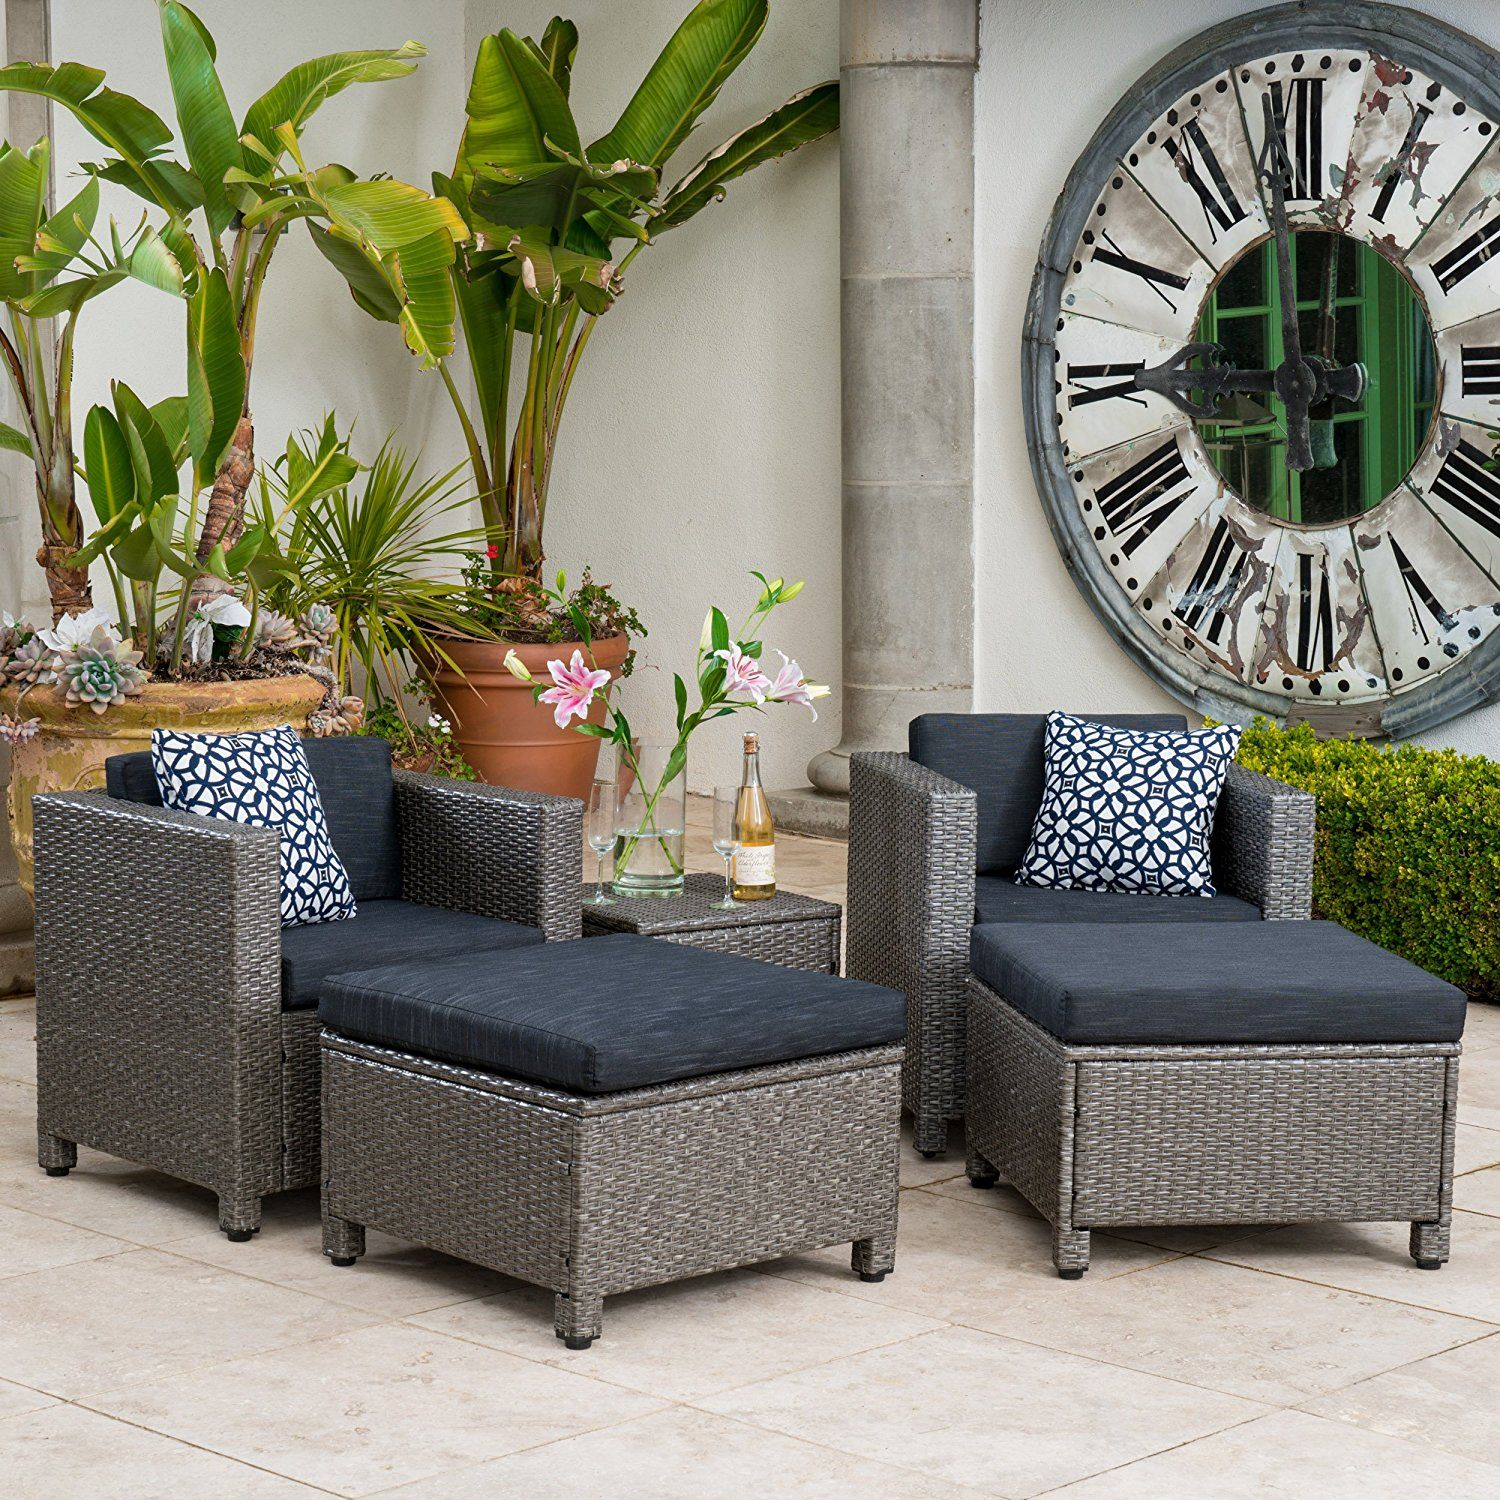 Amazon com venice outdoor wicker patio furniture grey black sofa seating set w cushions 5 piece set grey and black chat set patio lawn garden